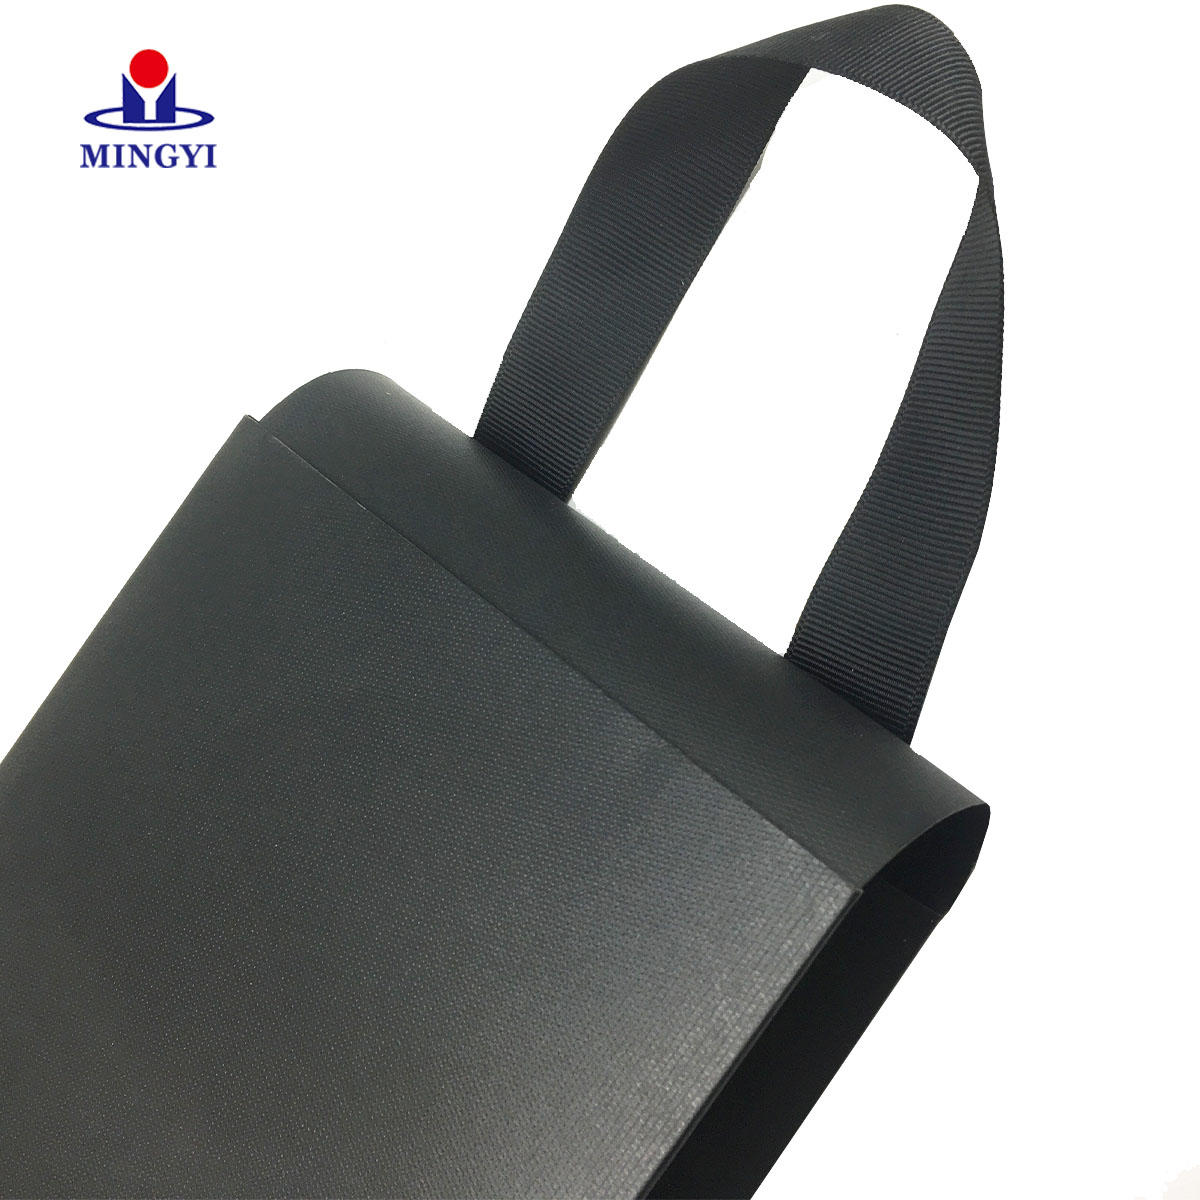 Custom minimum dimension cosmetic retail packaging bag with high quality surface treatment